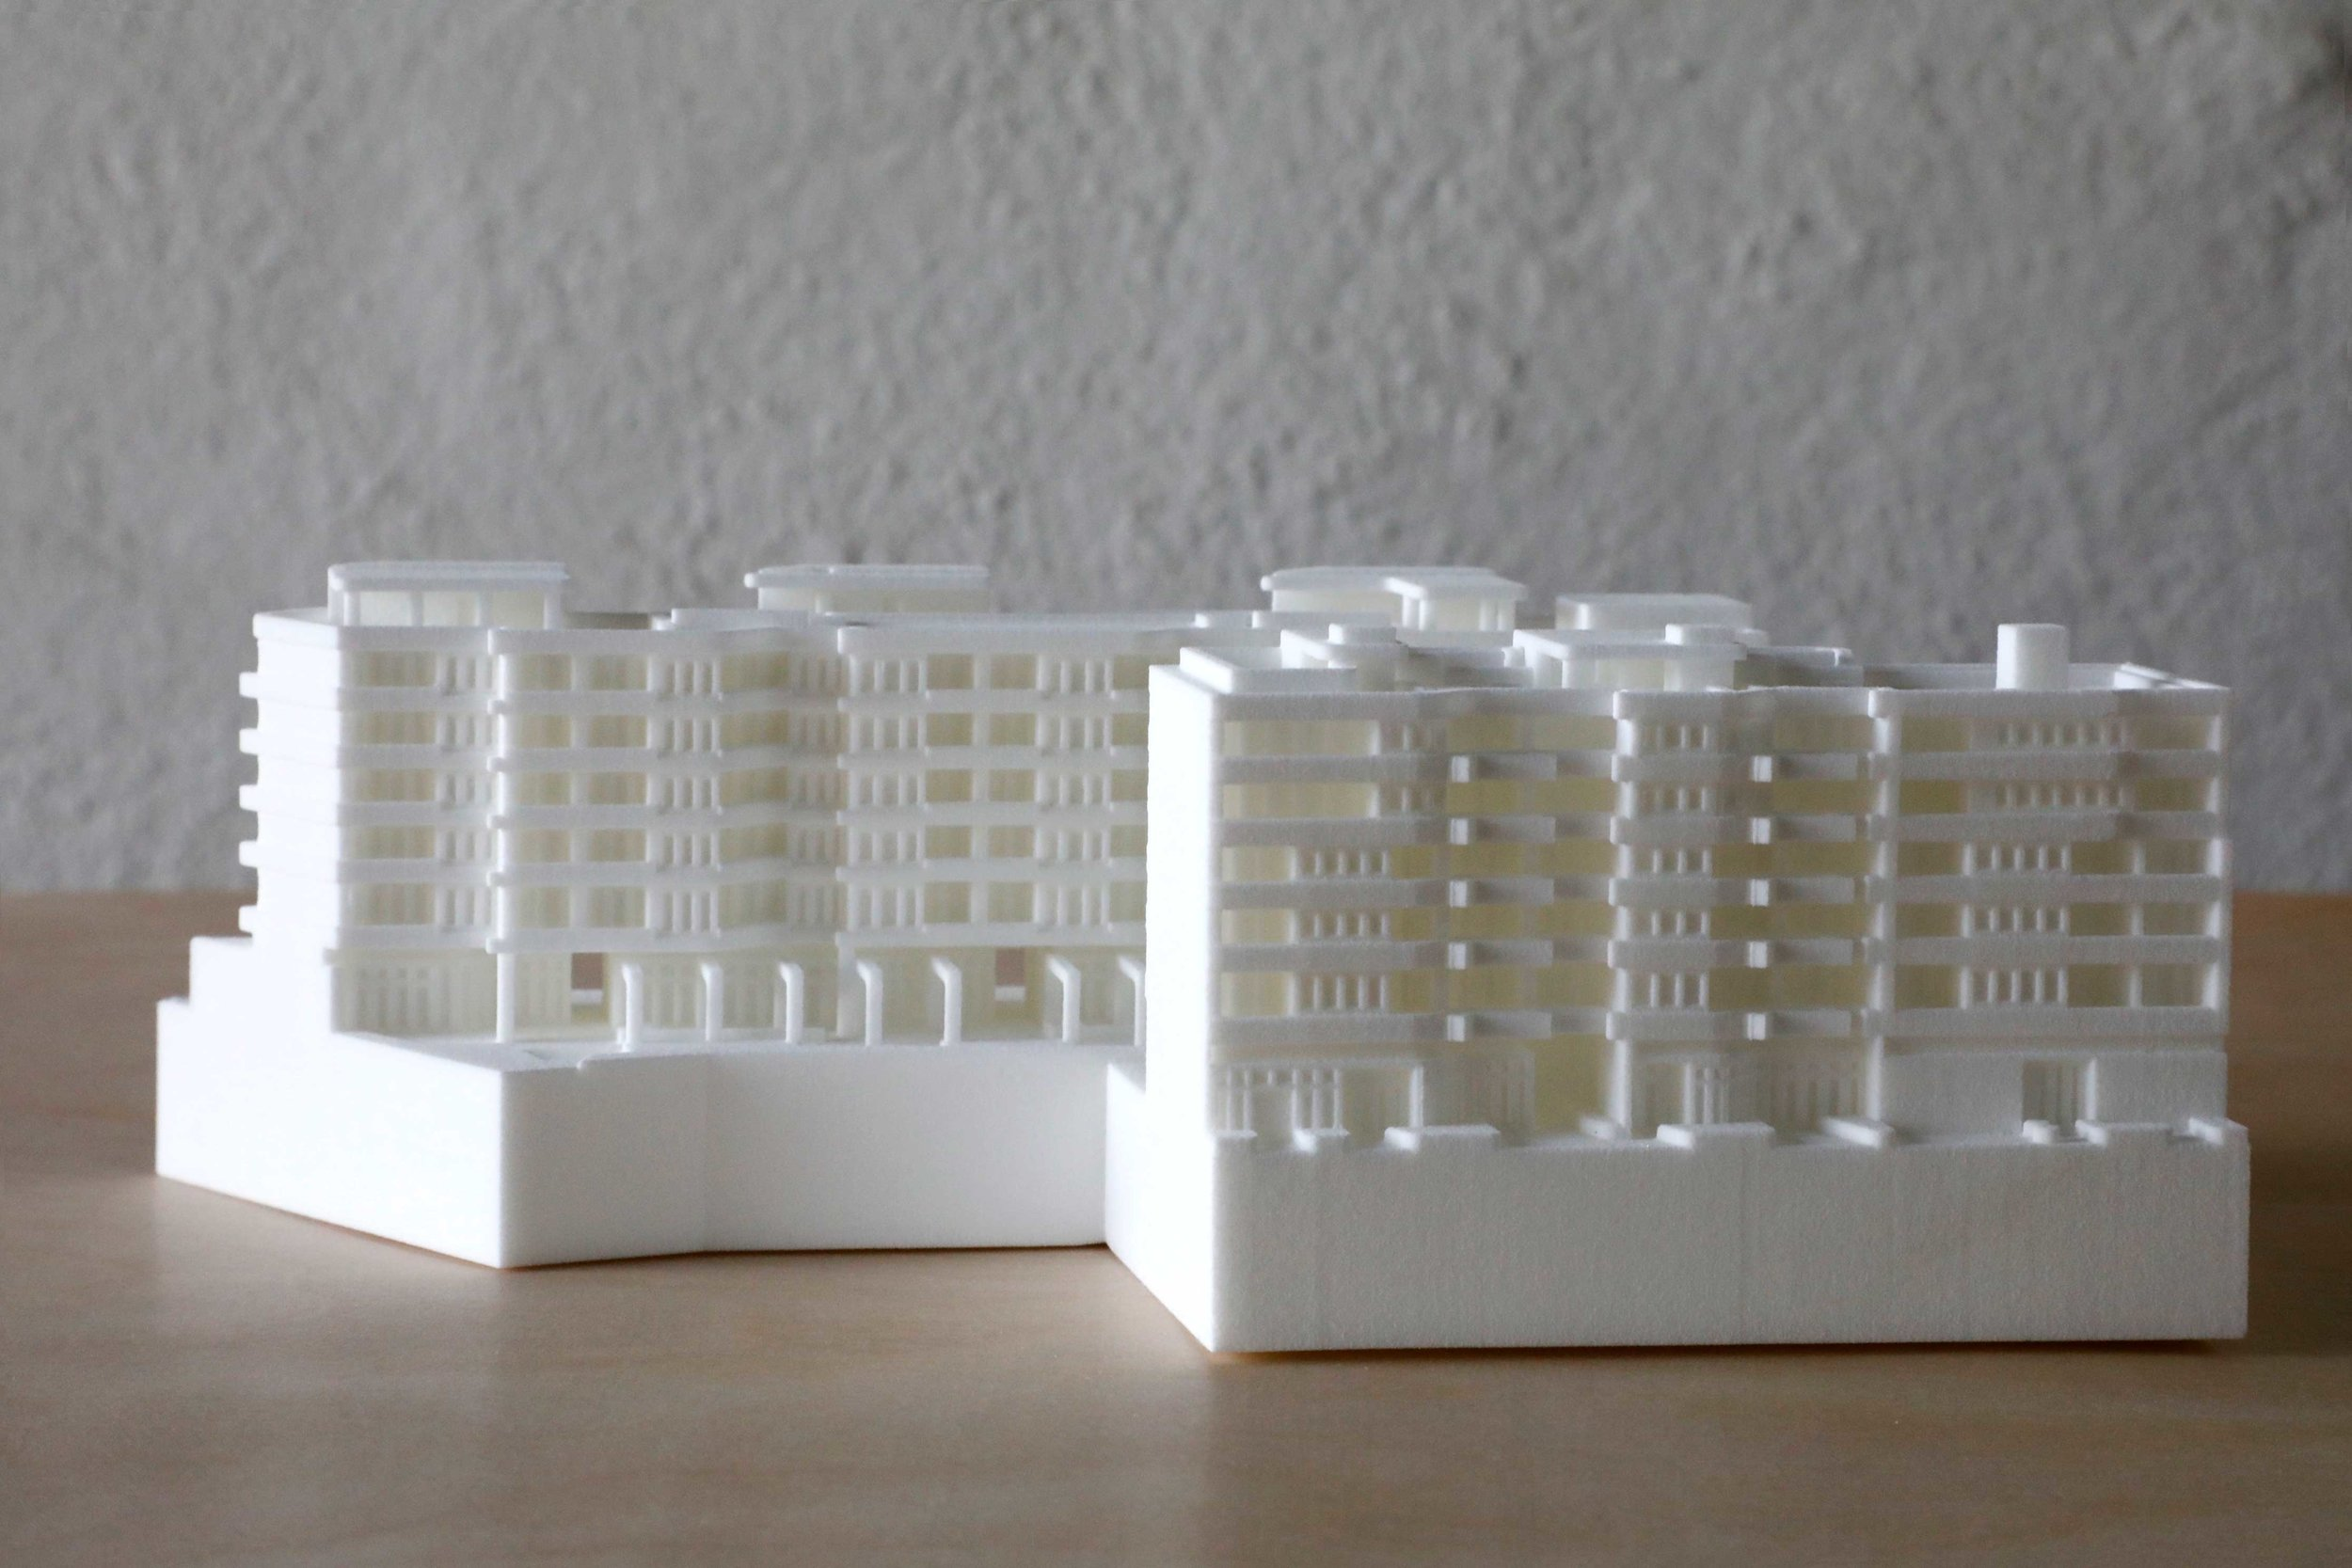 DA_Model_Sydney_Make_Models_Architecture_3d_print - Copy.jpg